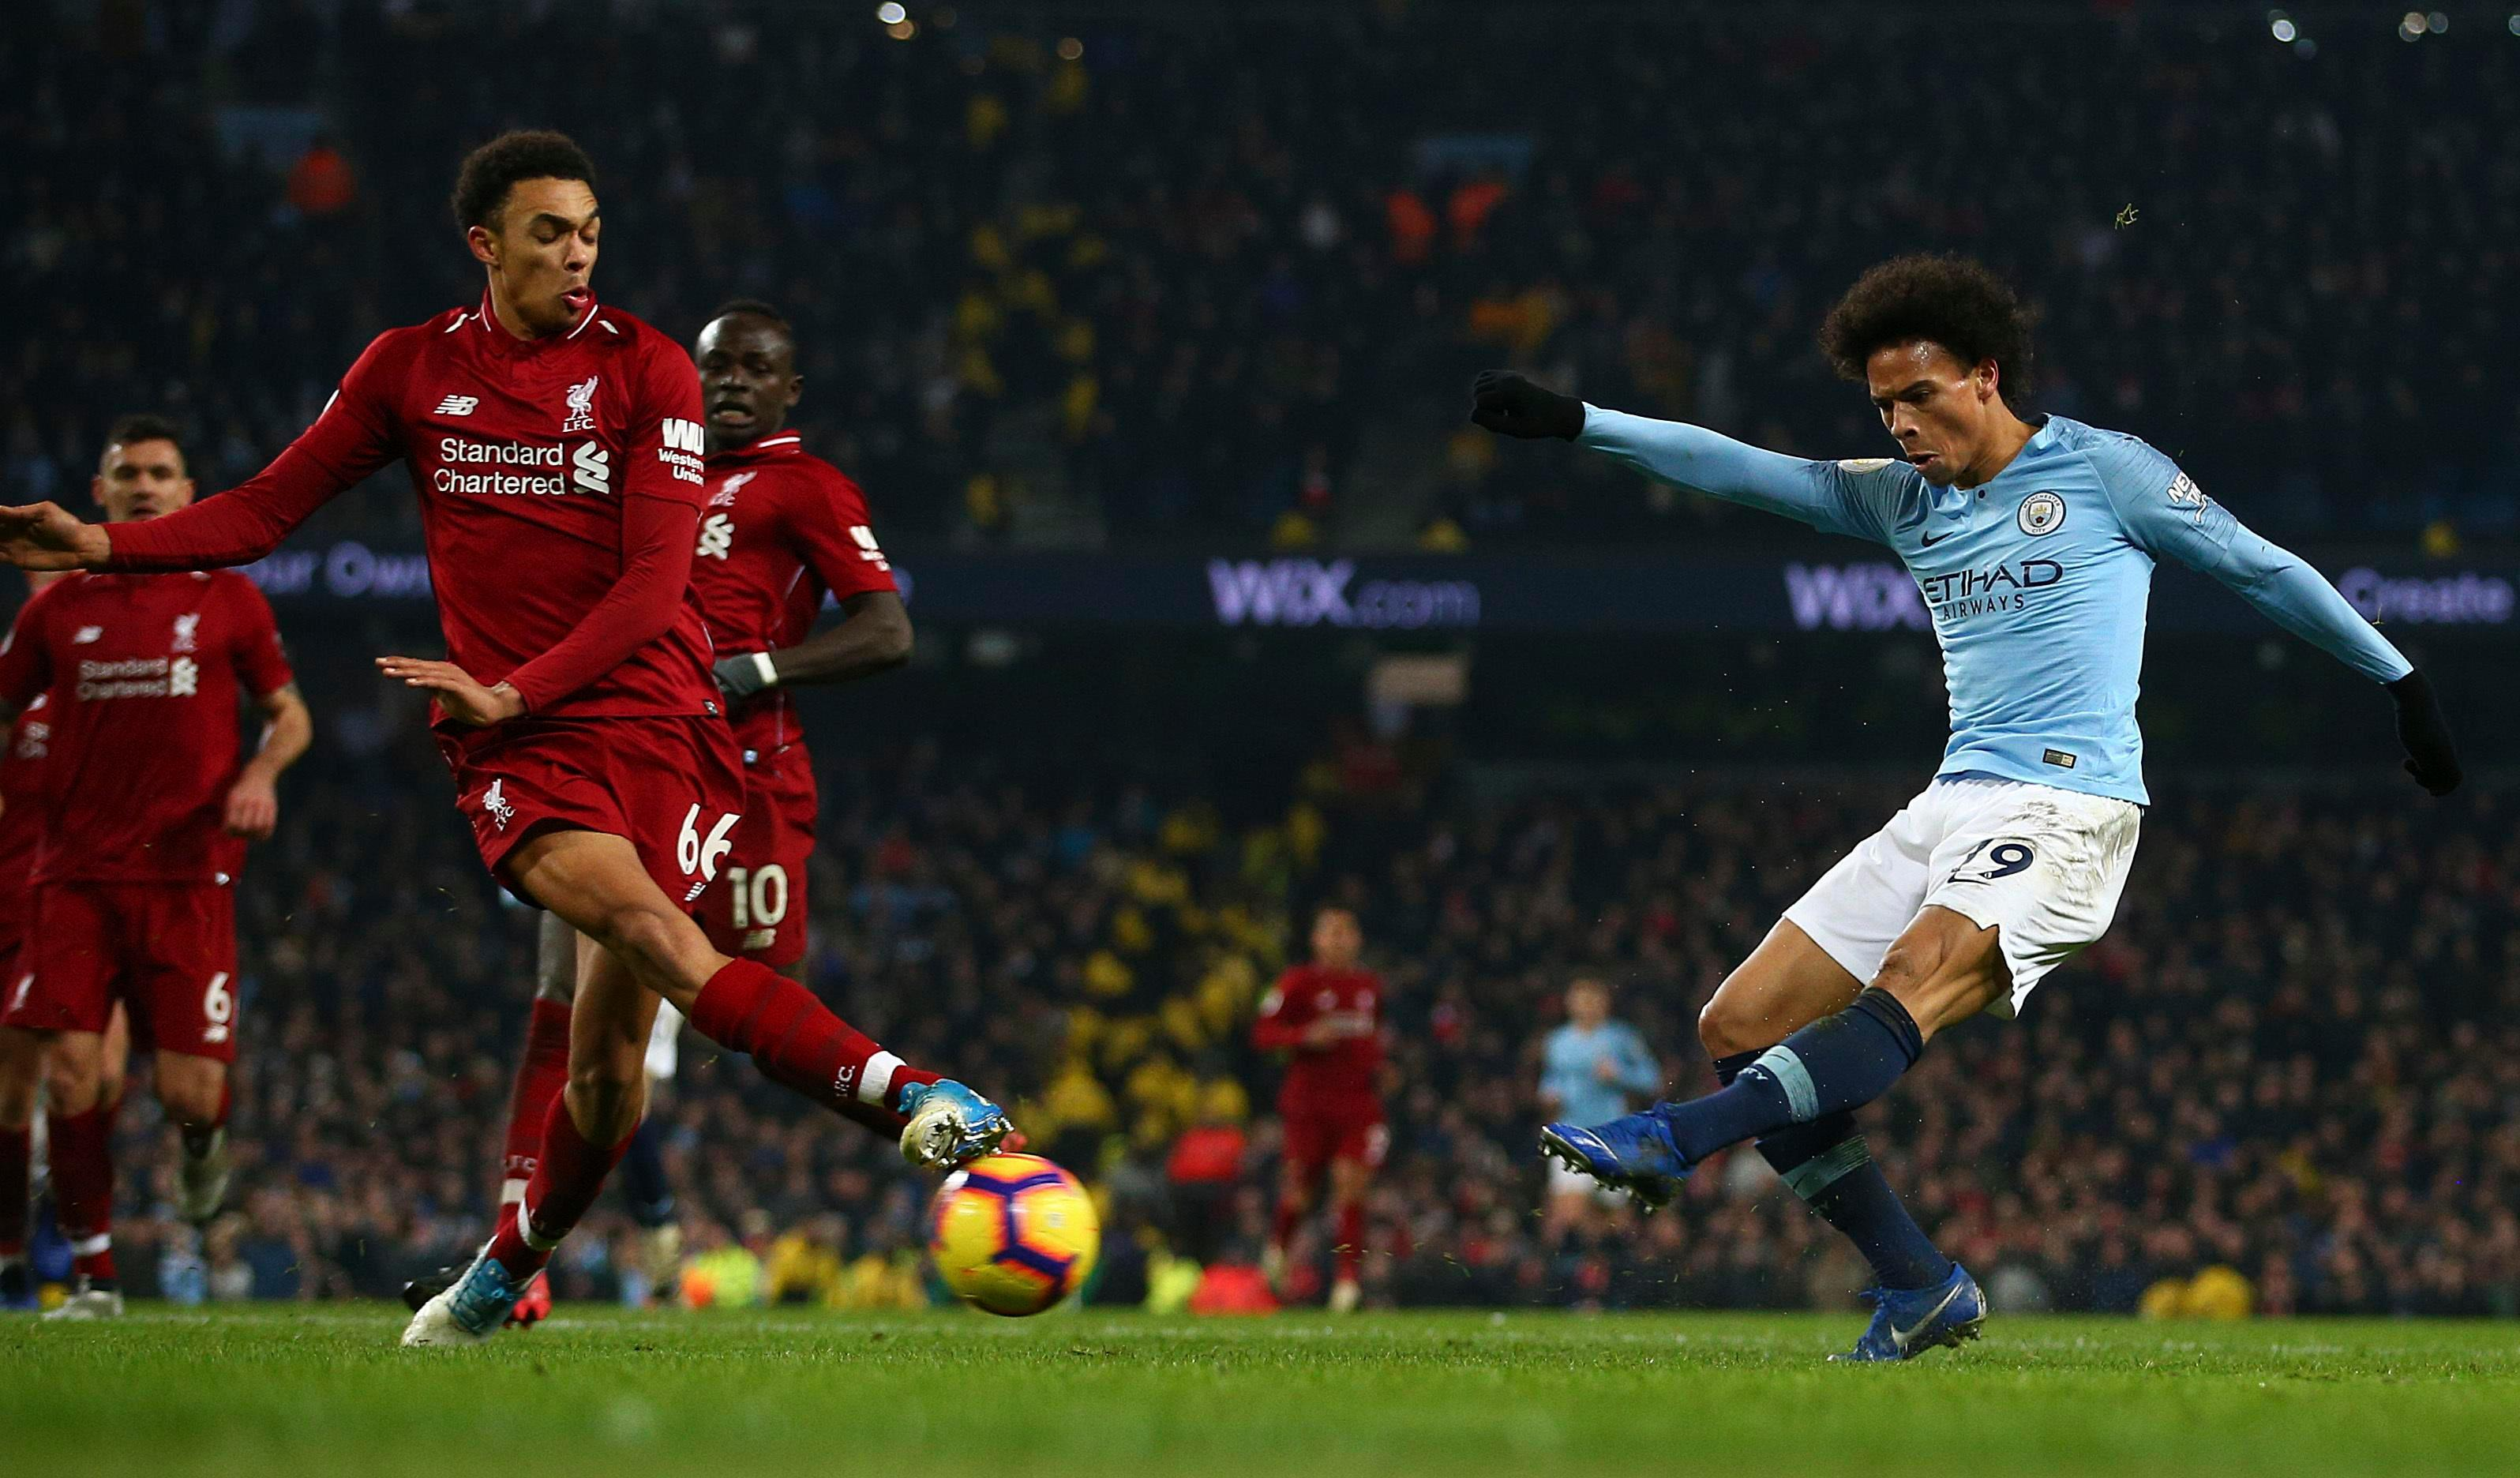 Leroy Sane fired Man City to a 2-1 victory that cut the gap to four points